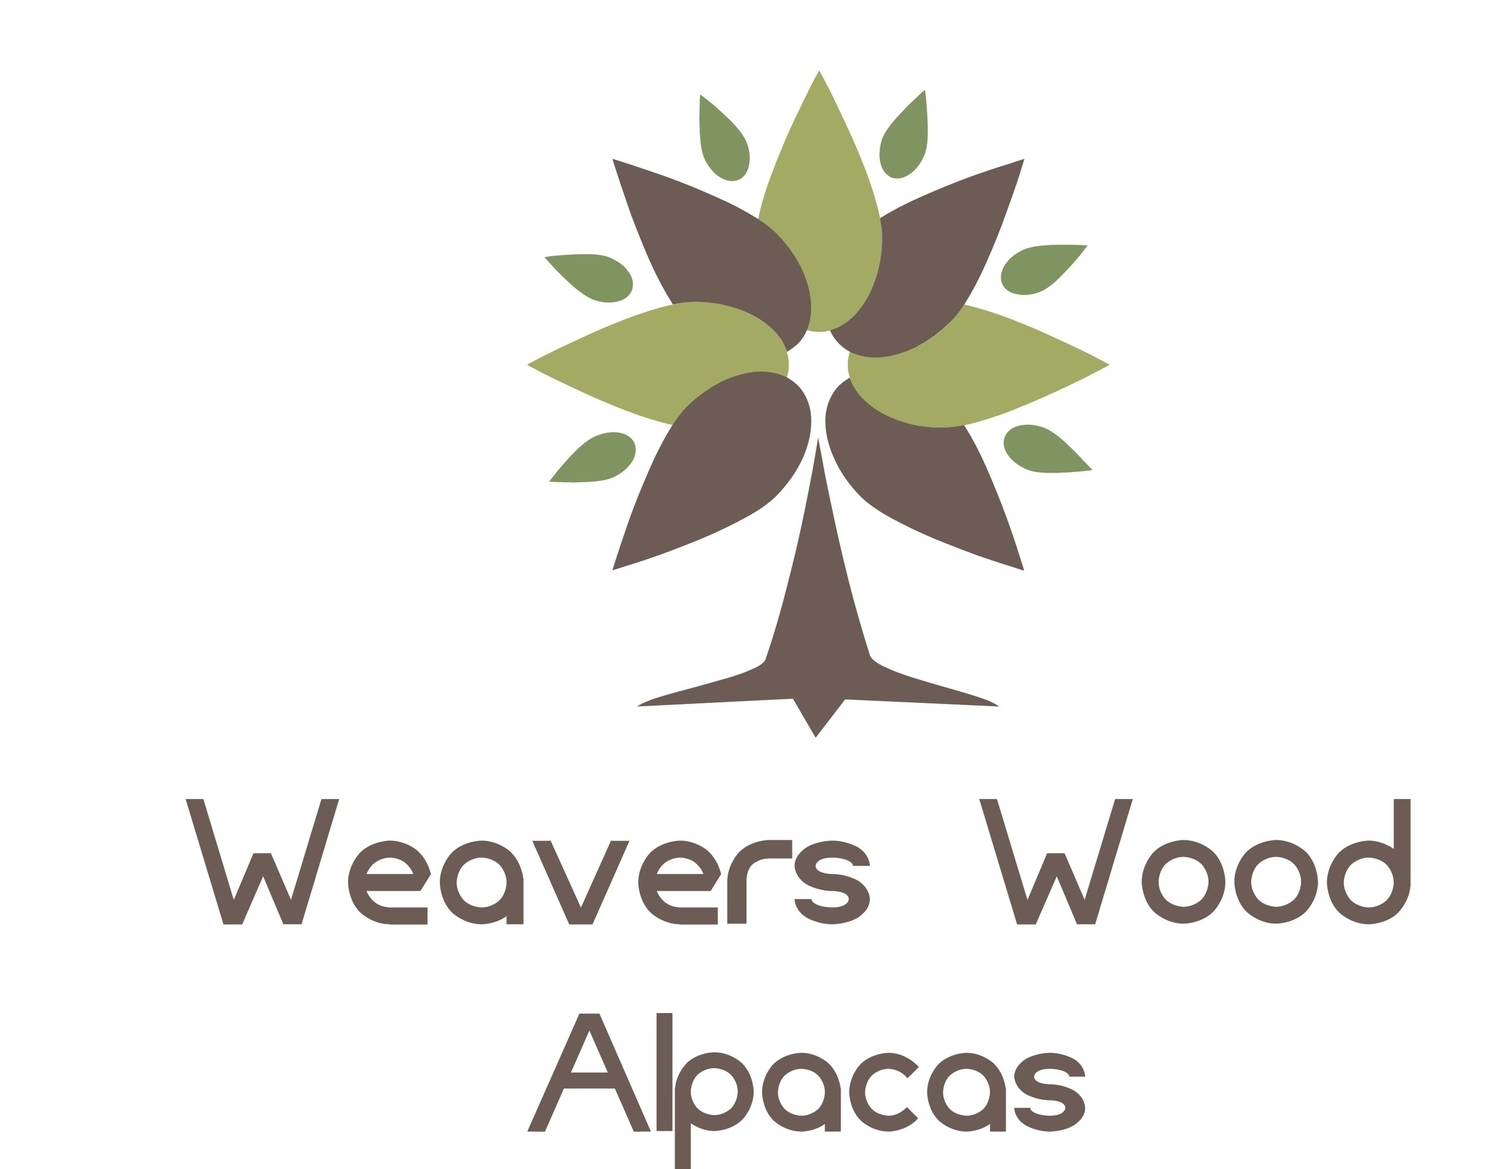 Weavers Wood Alpacas